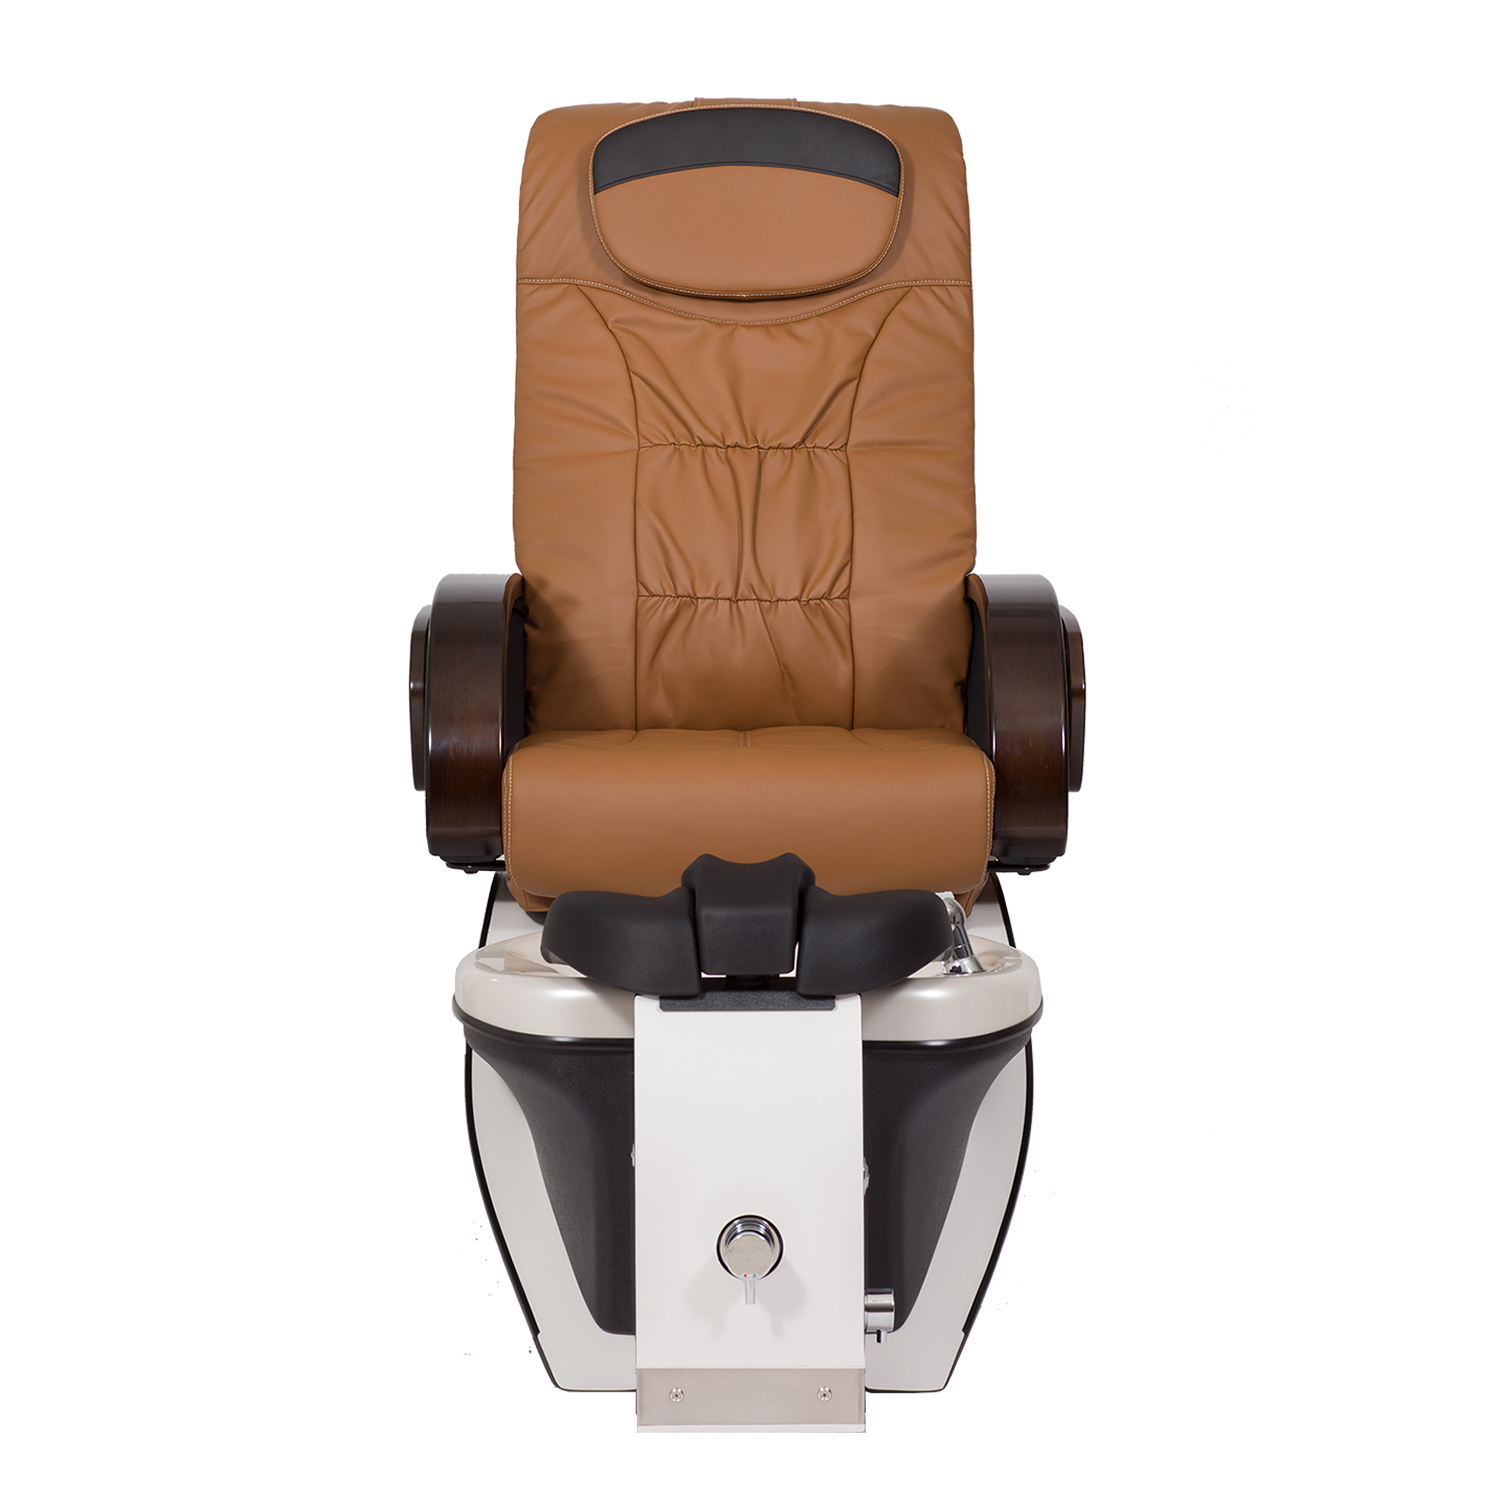 Continuum Footspas Echo Plus LE Pedicure Spa Chair alternative product image 1